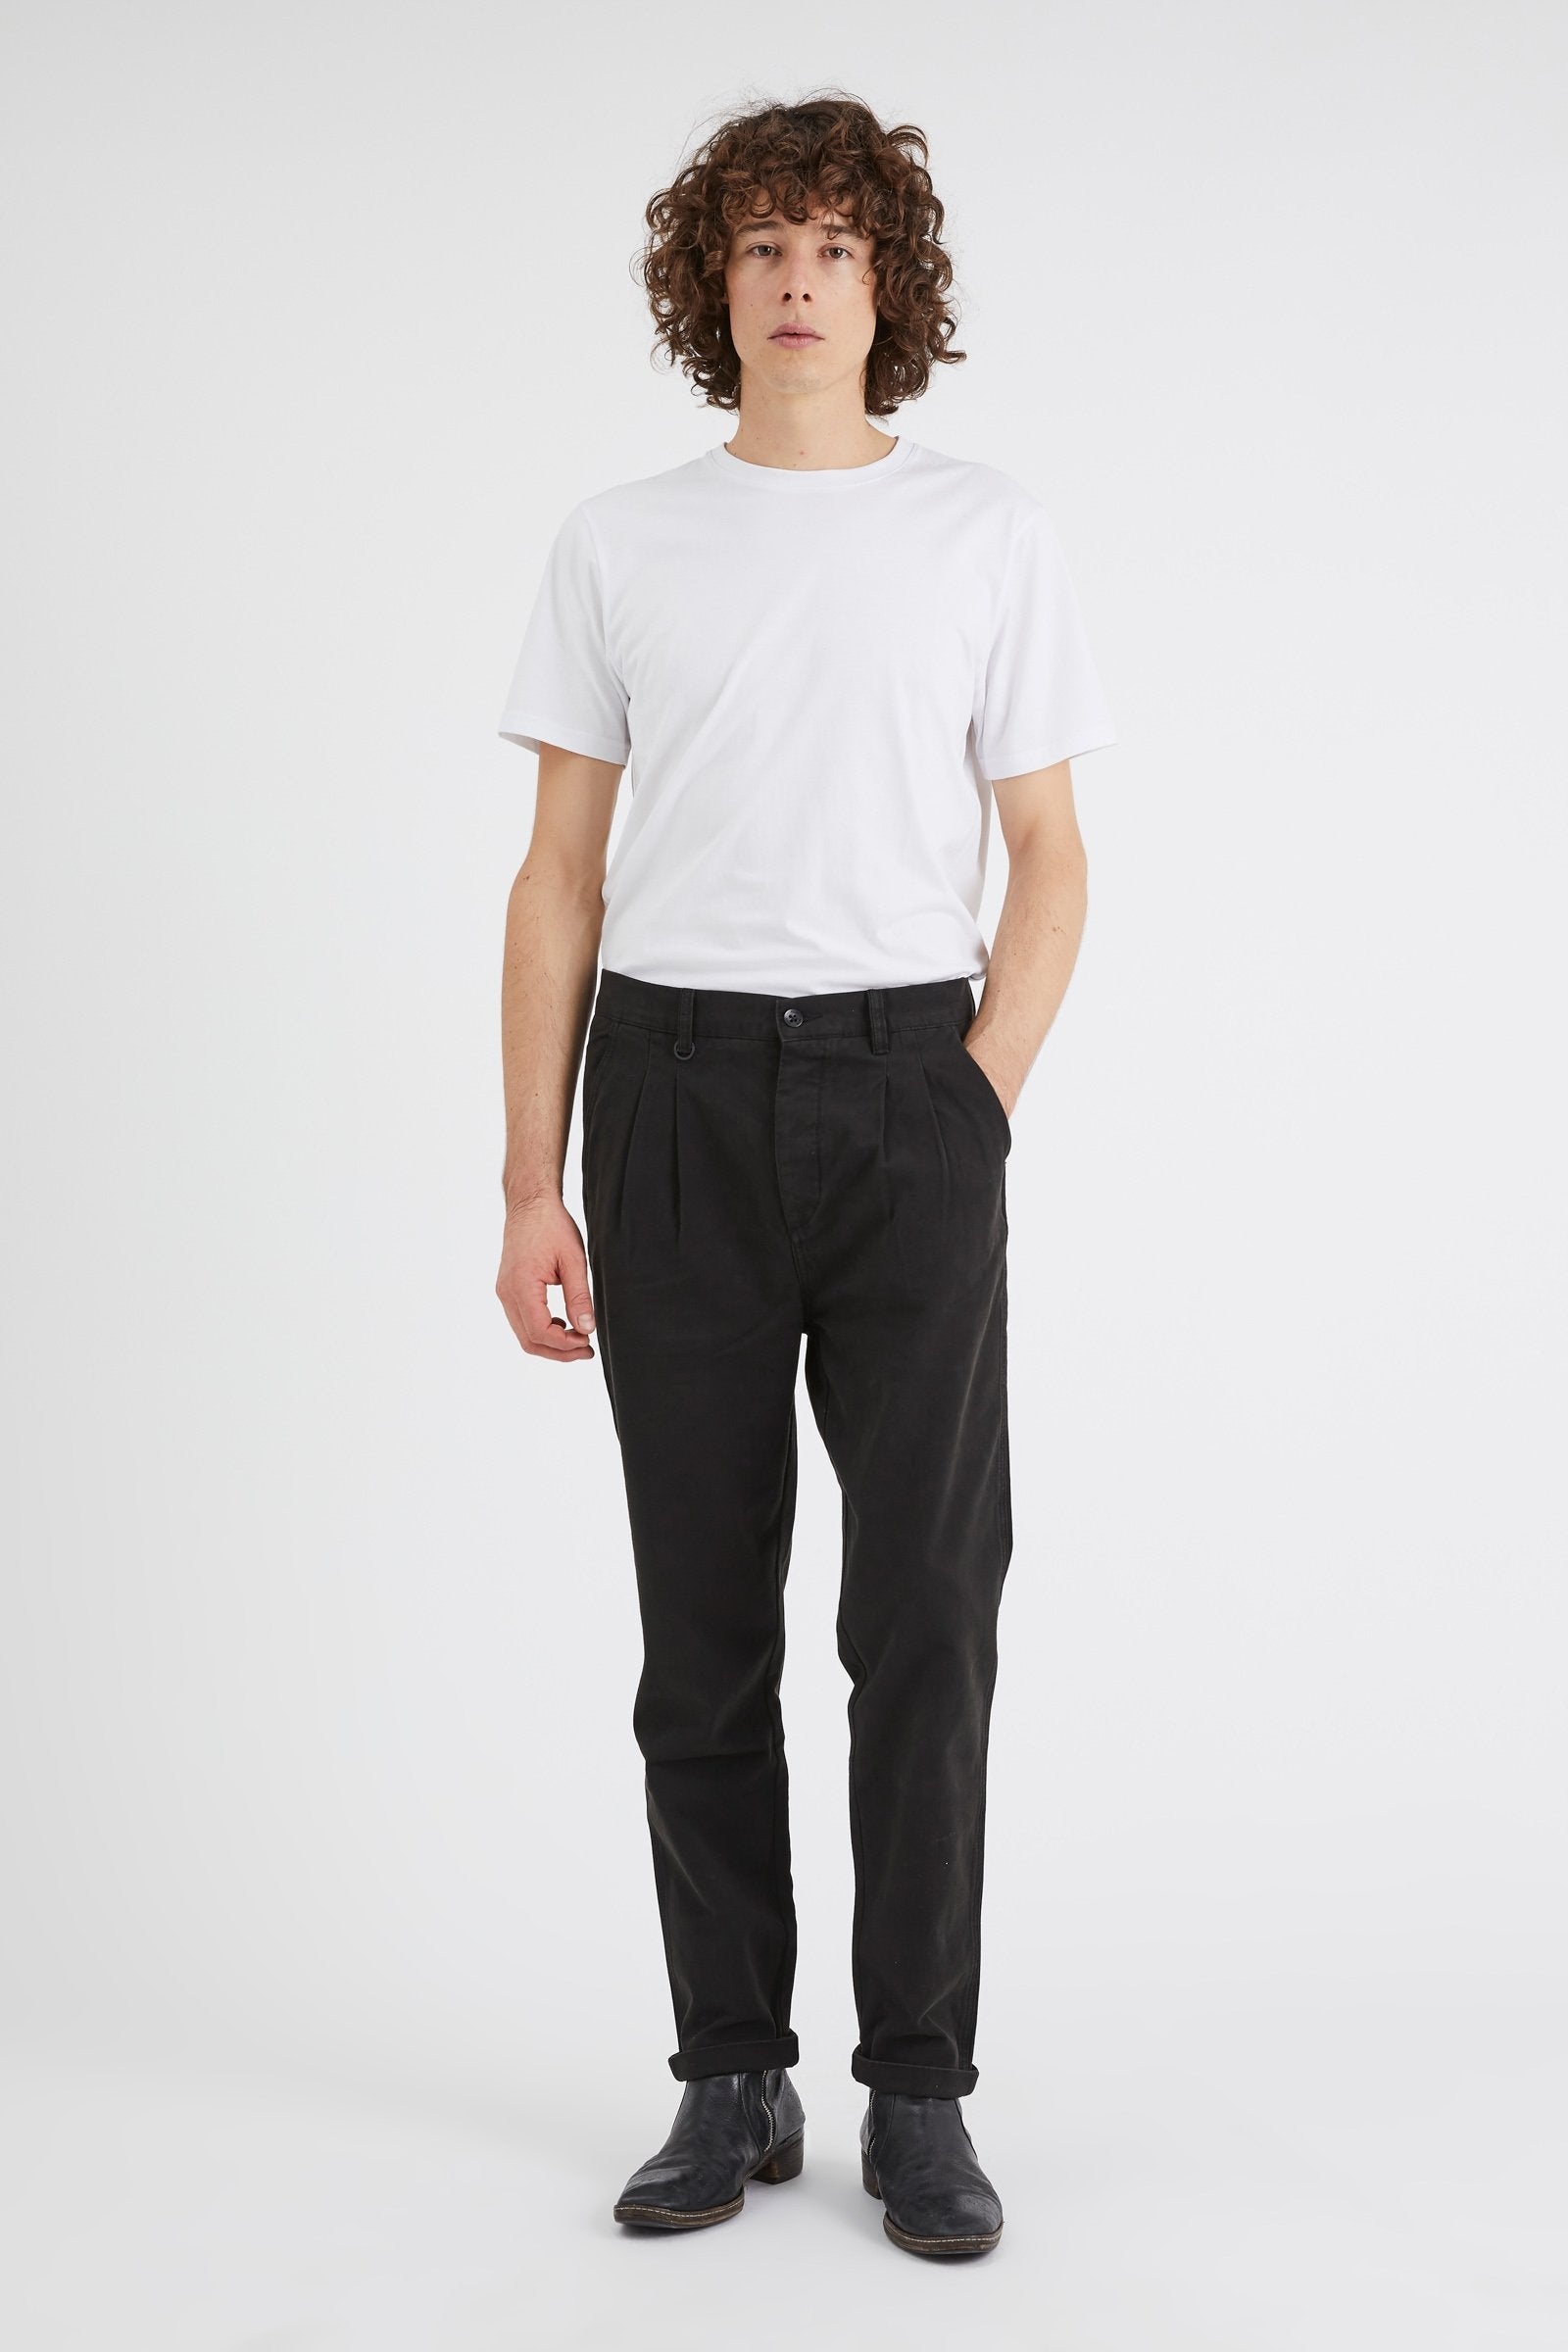 Studio Pleat Pant - Black